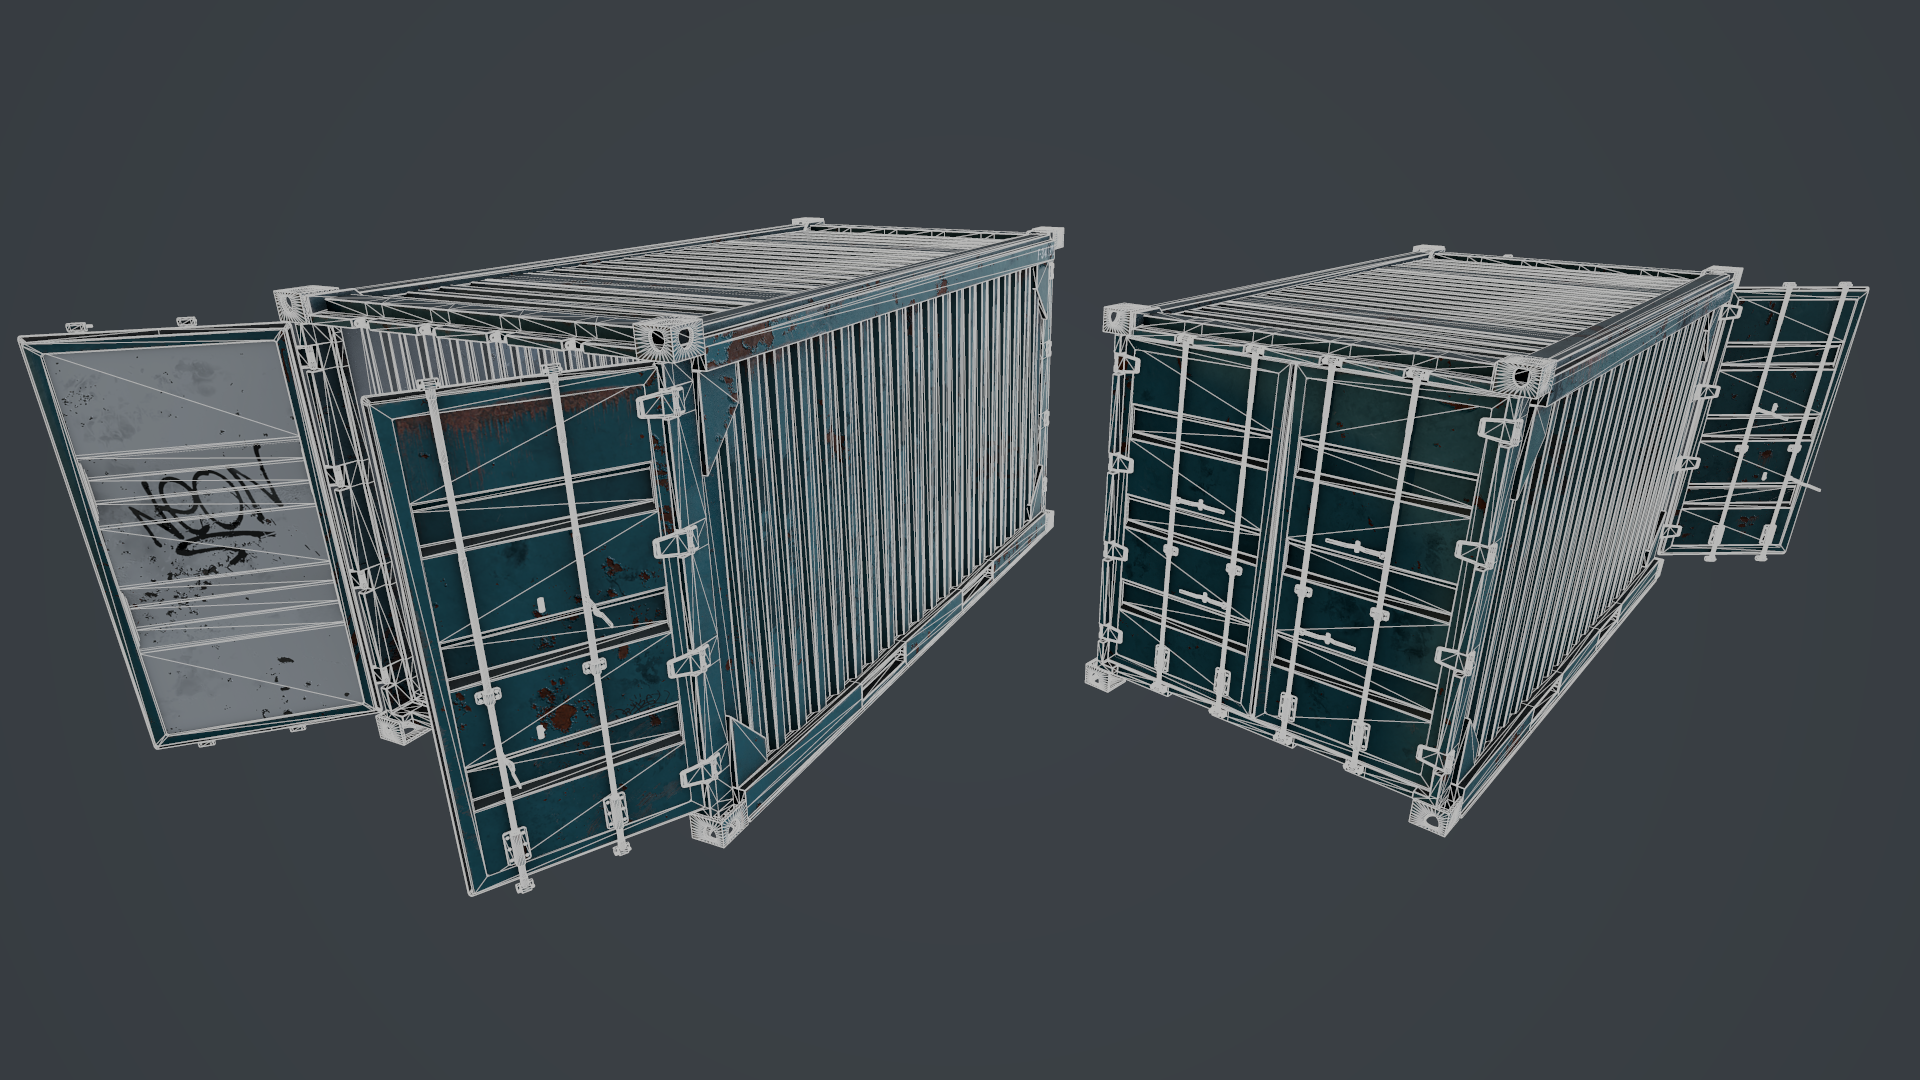 Wireframe shot of the rusty container, rendered in Marmoset Toolbag